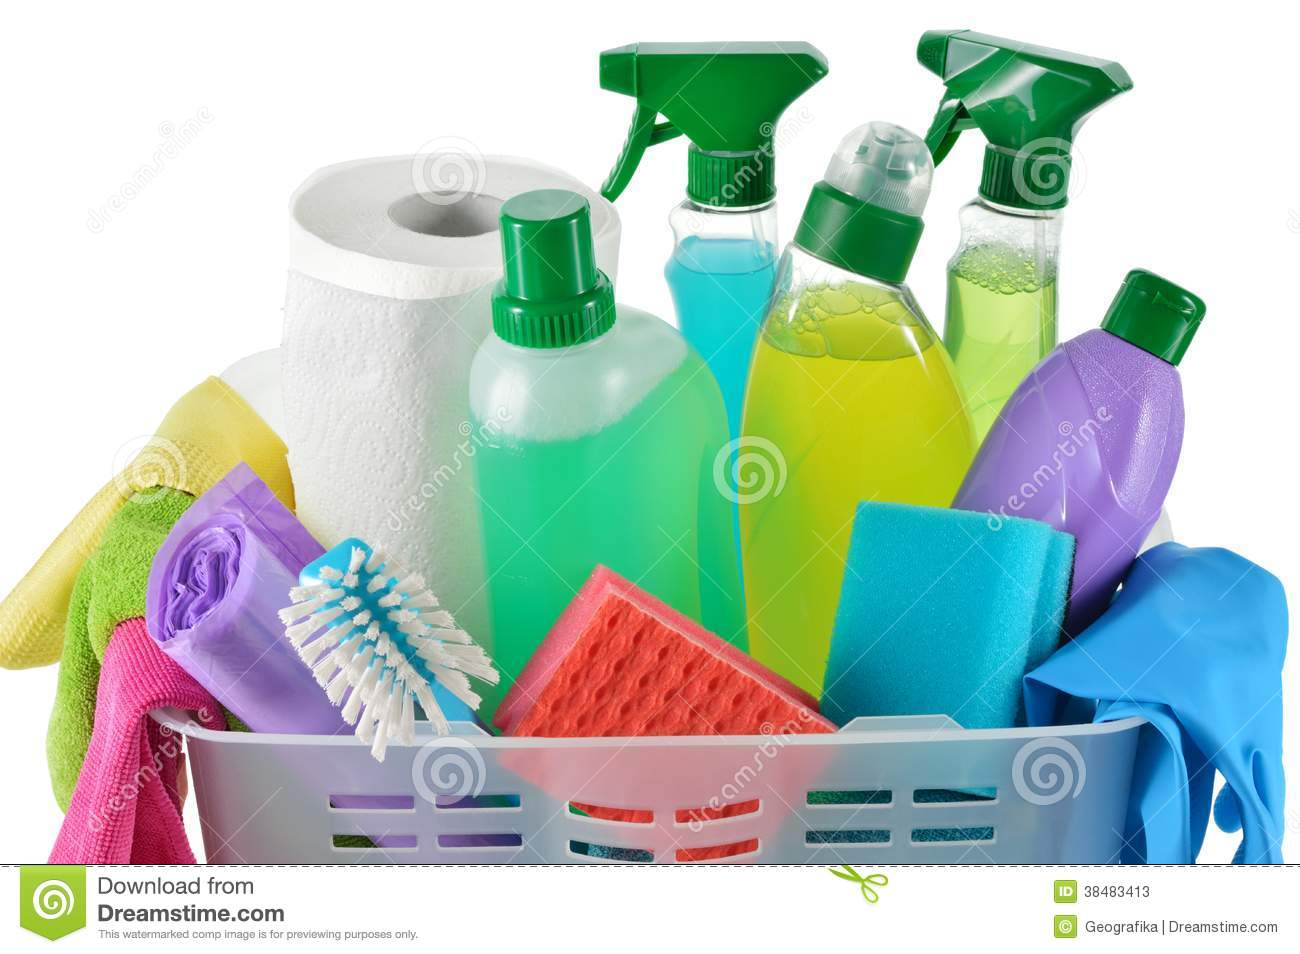 Cleaning Products And Supplies In A Basket Stock Photos